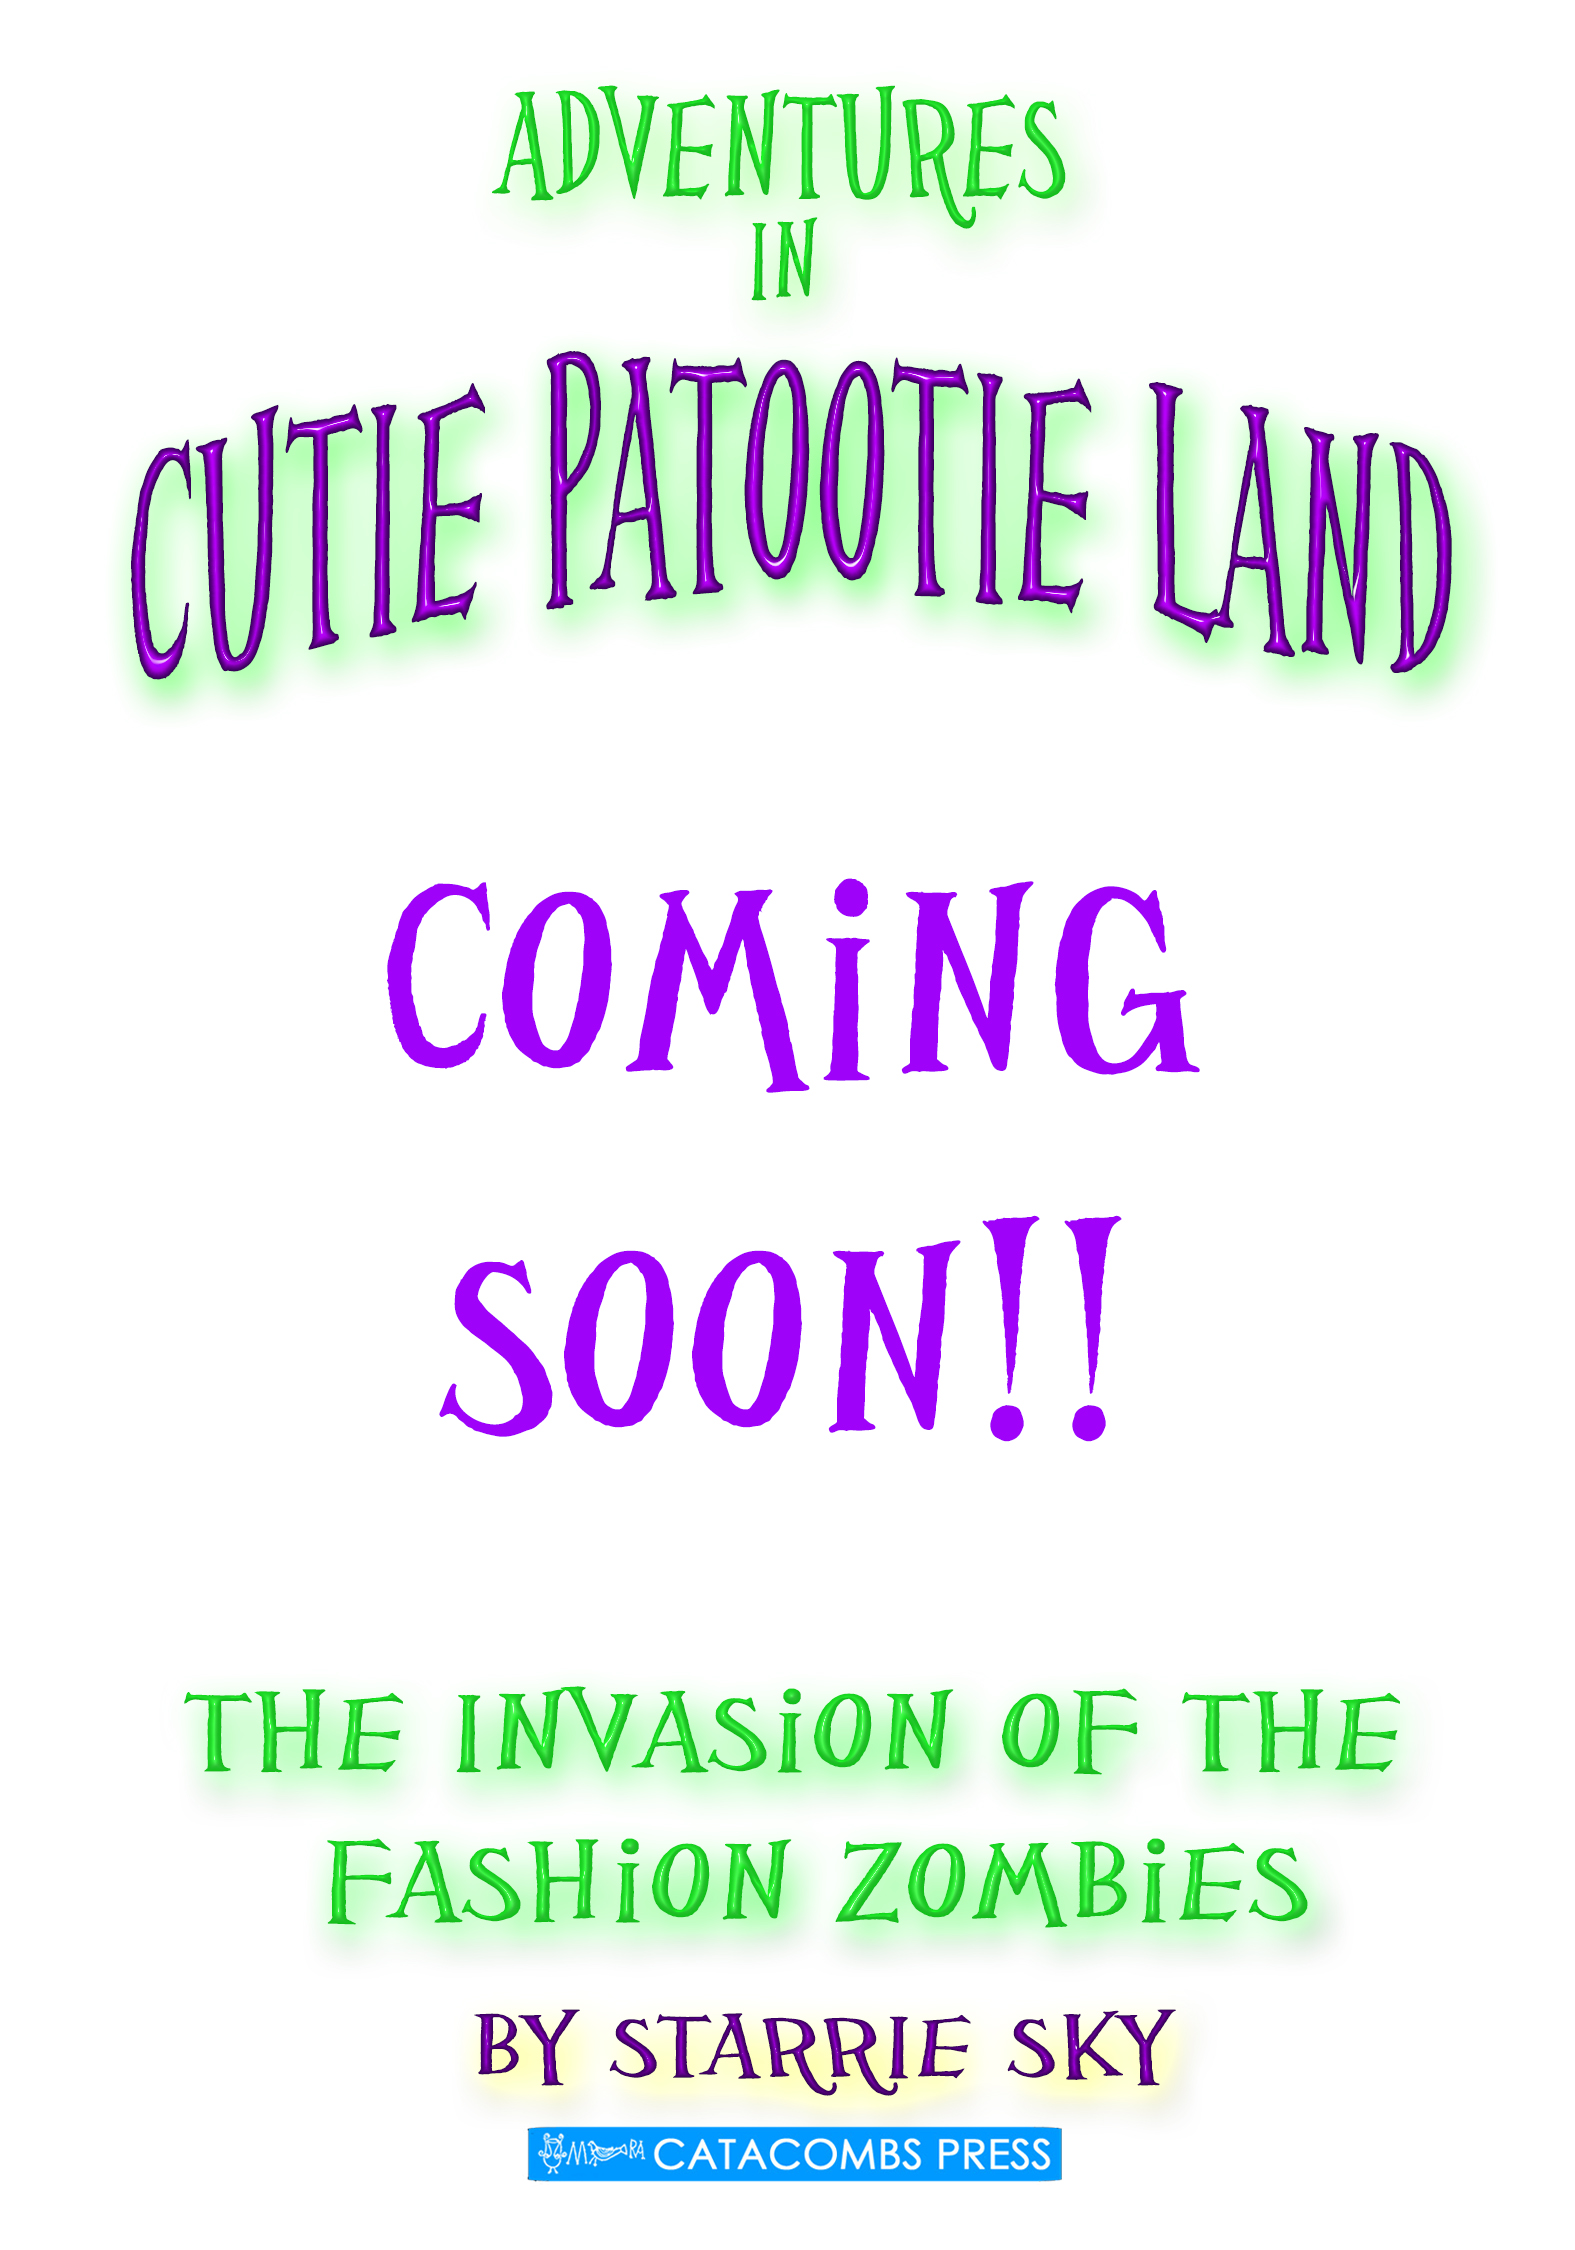 Adventures in Cutie Patootie Land and the Invasion of the Fashion Zombies